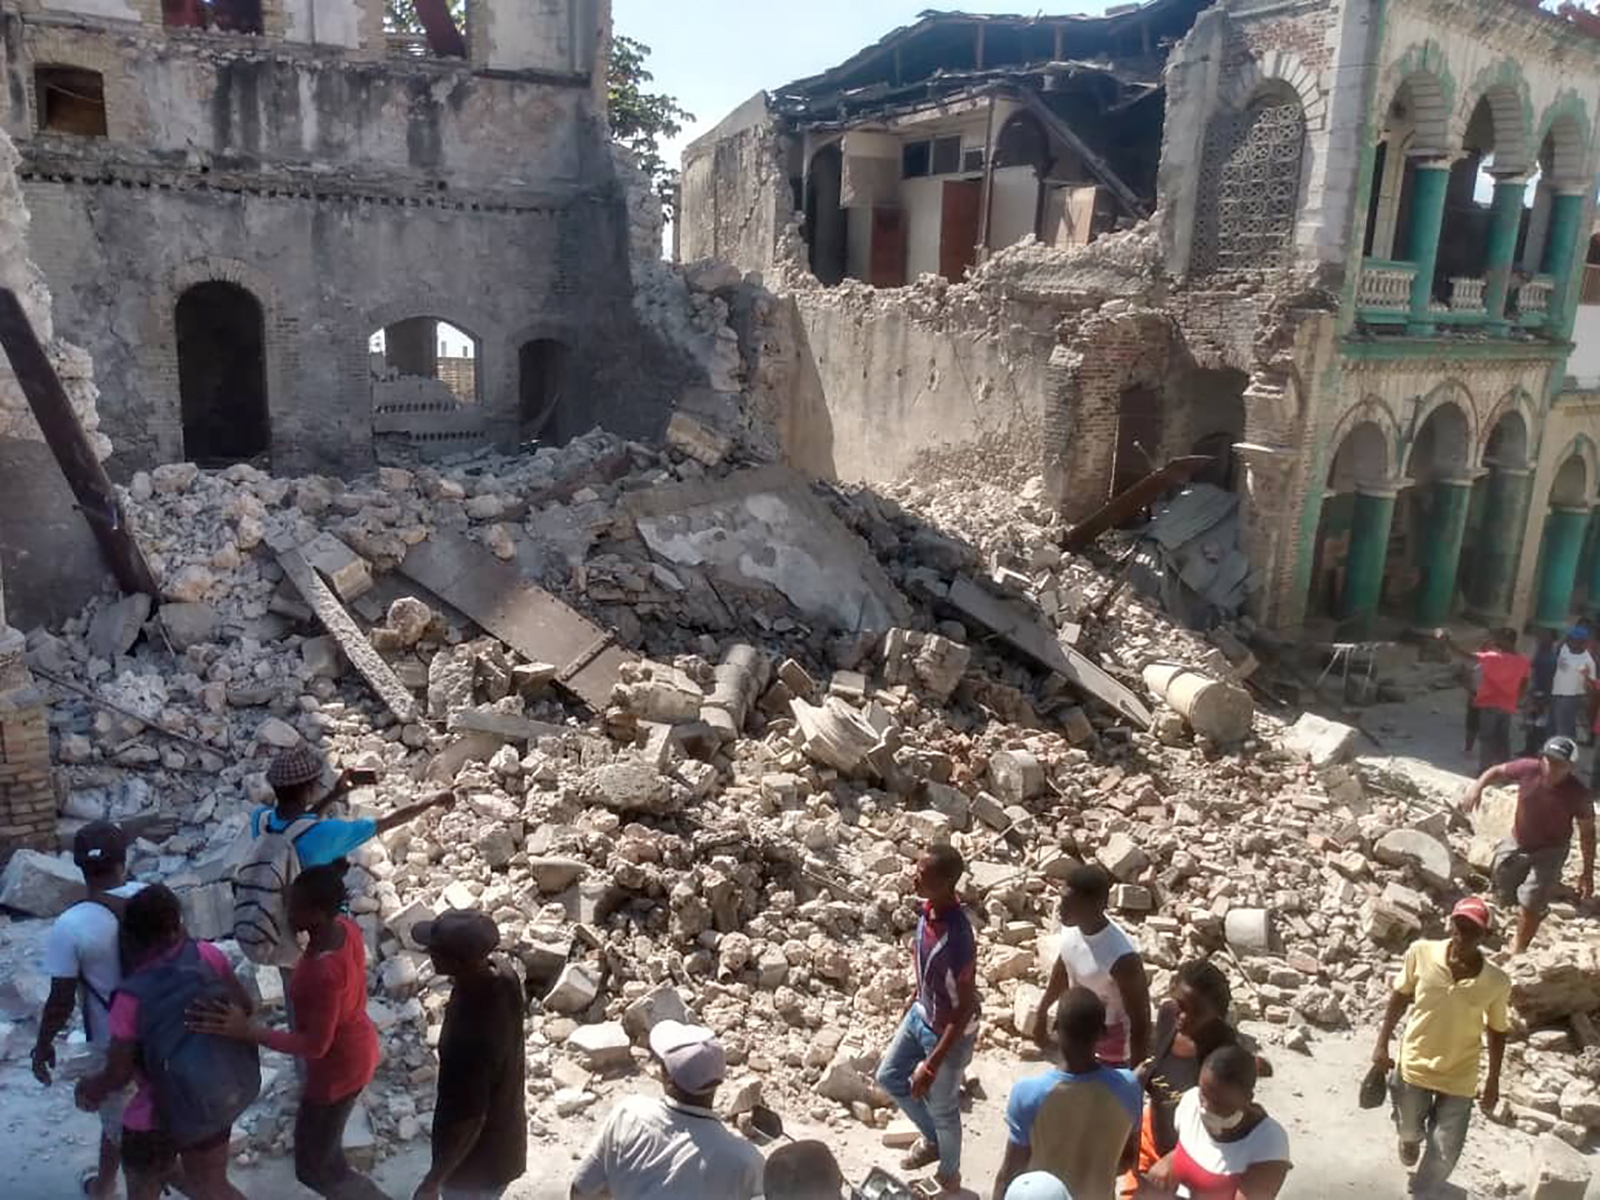 People inspect damaged buildings in Jeremie, Haiti, following a 7.2 magnitude earthquake struck the country on Aug. 14, 2021. The earthquake's epicenter was approximately 12 kilometers (7.5 miles) northeast of Saint-Louis-du-Sud, with a depth of 10 kilometers (6 miles).